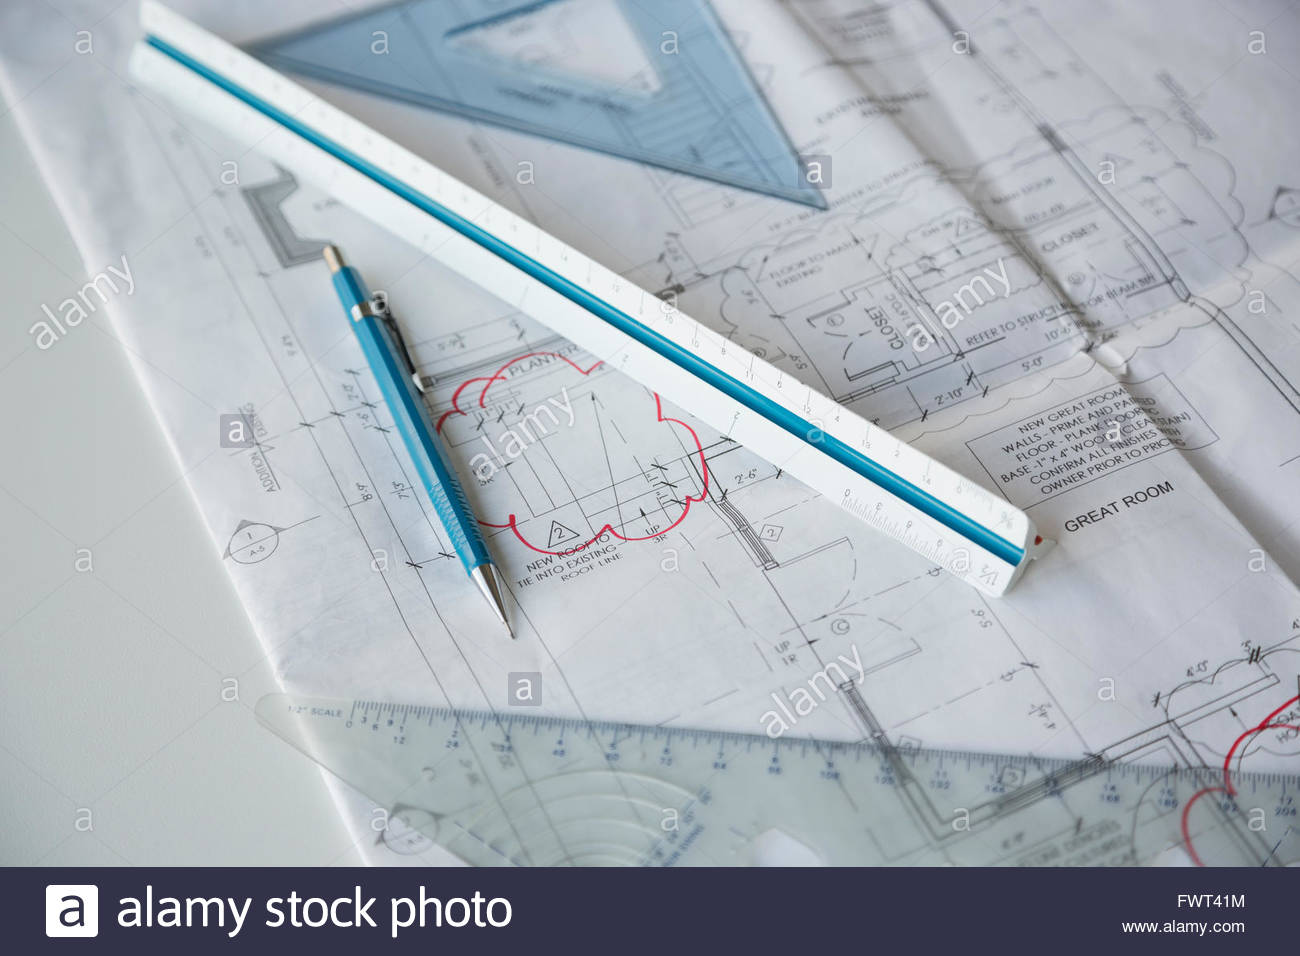 Blueprint and office supplies on table - Stock Image